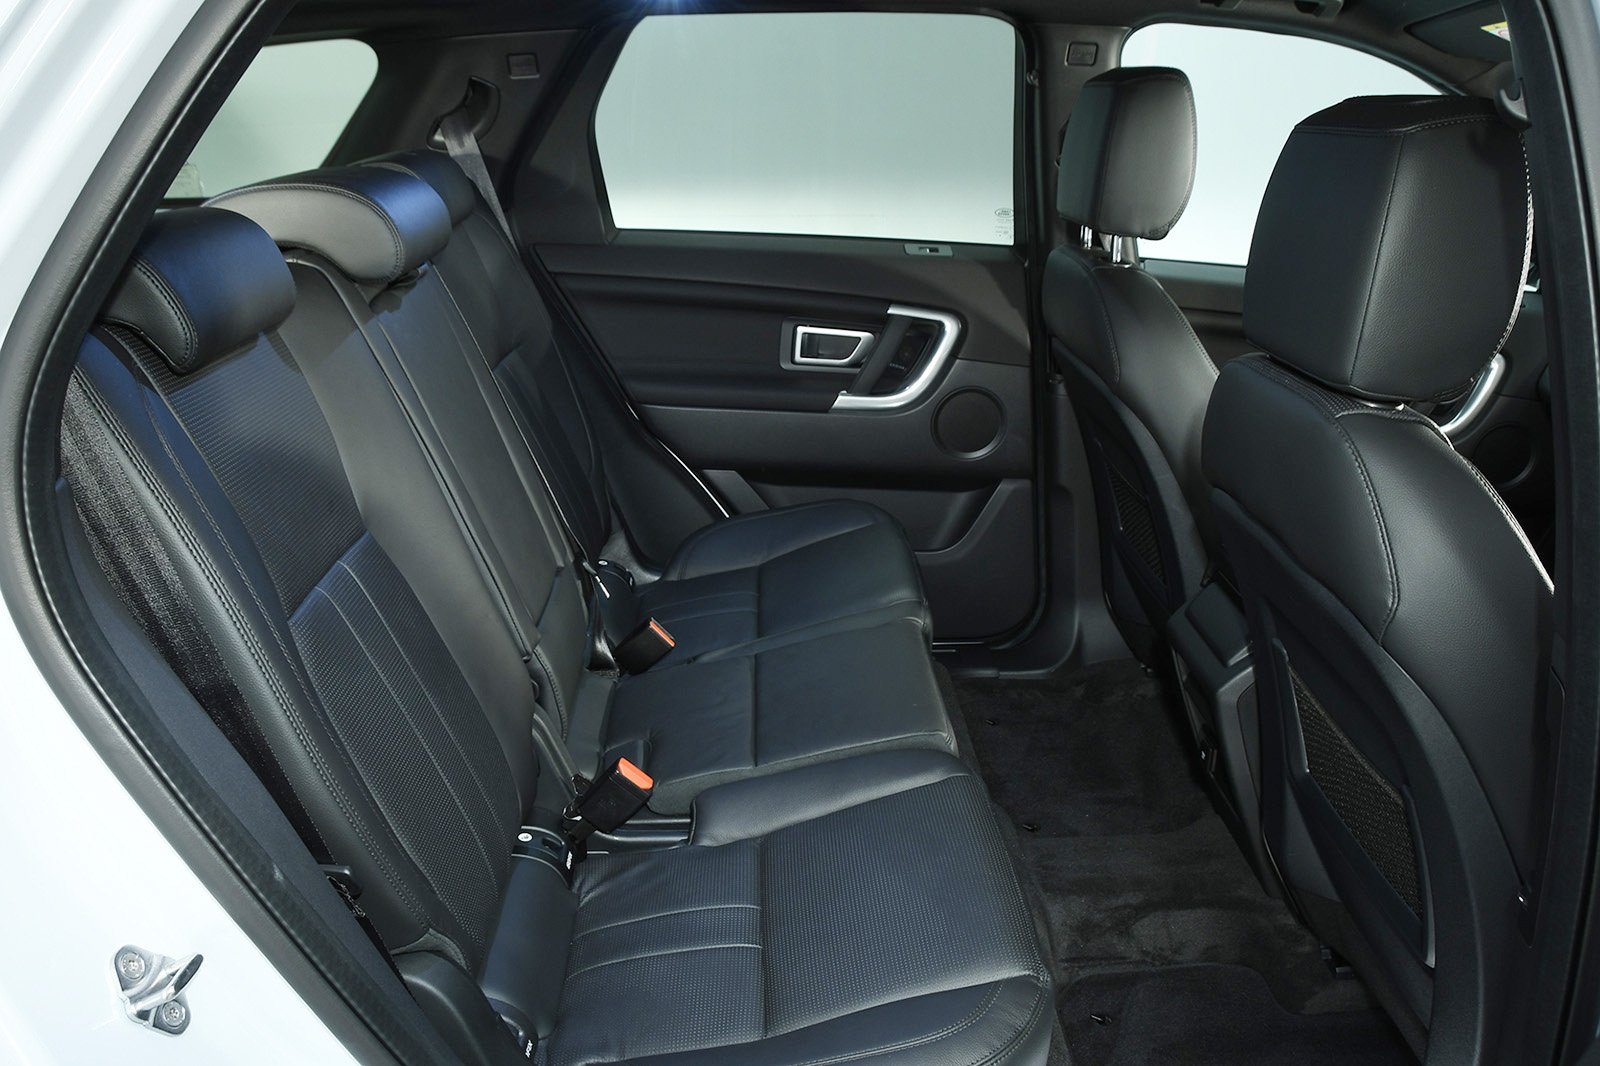 Land Rover back seats